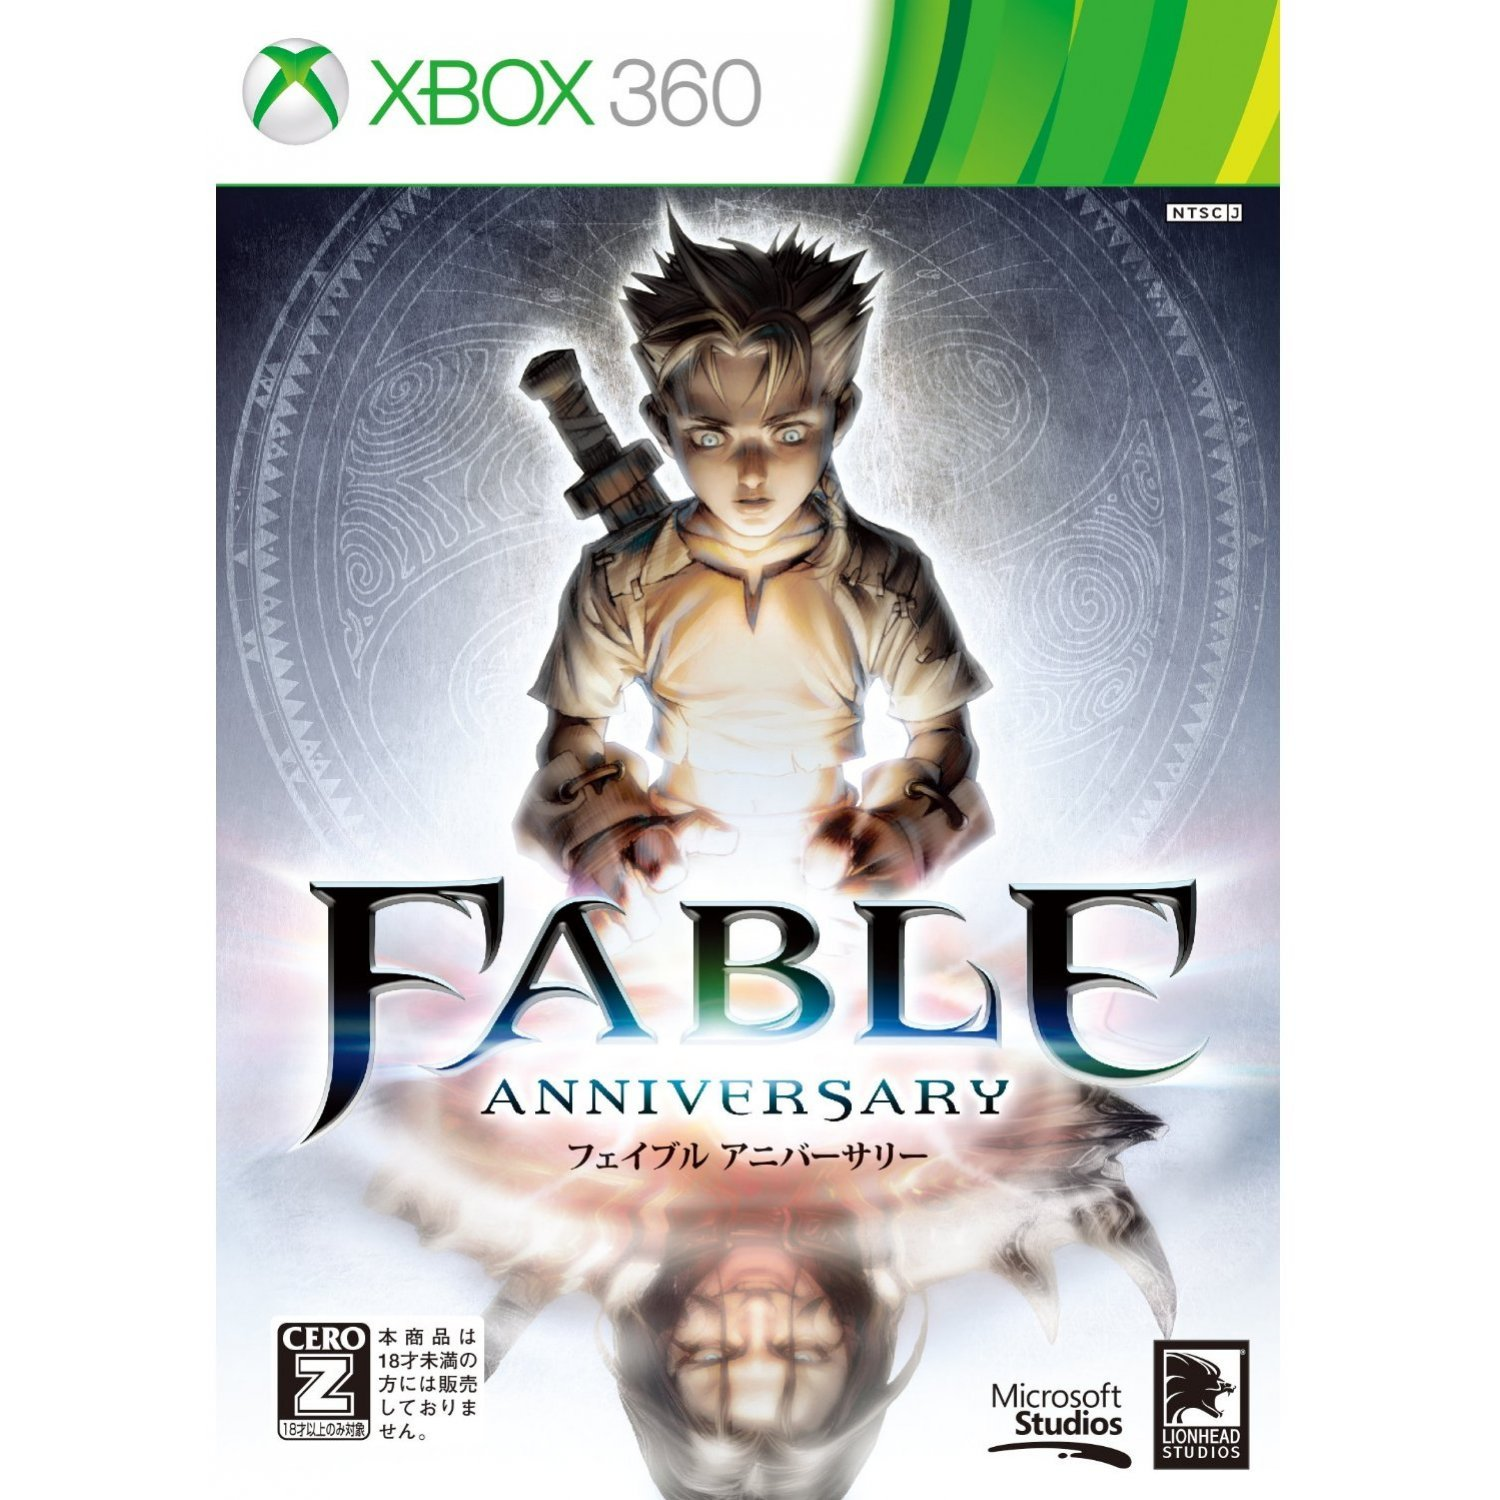 Fable ii limited edition xbox 360 game.